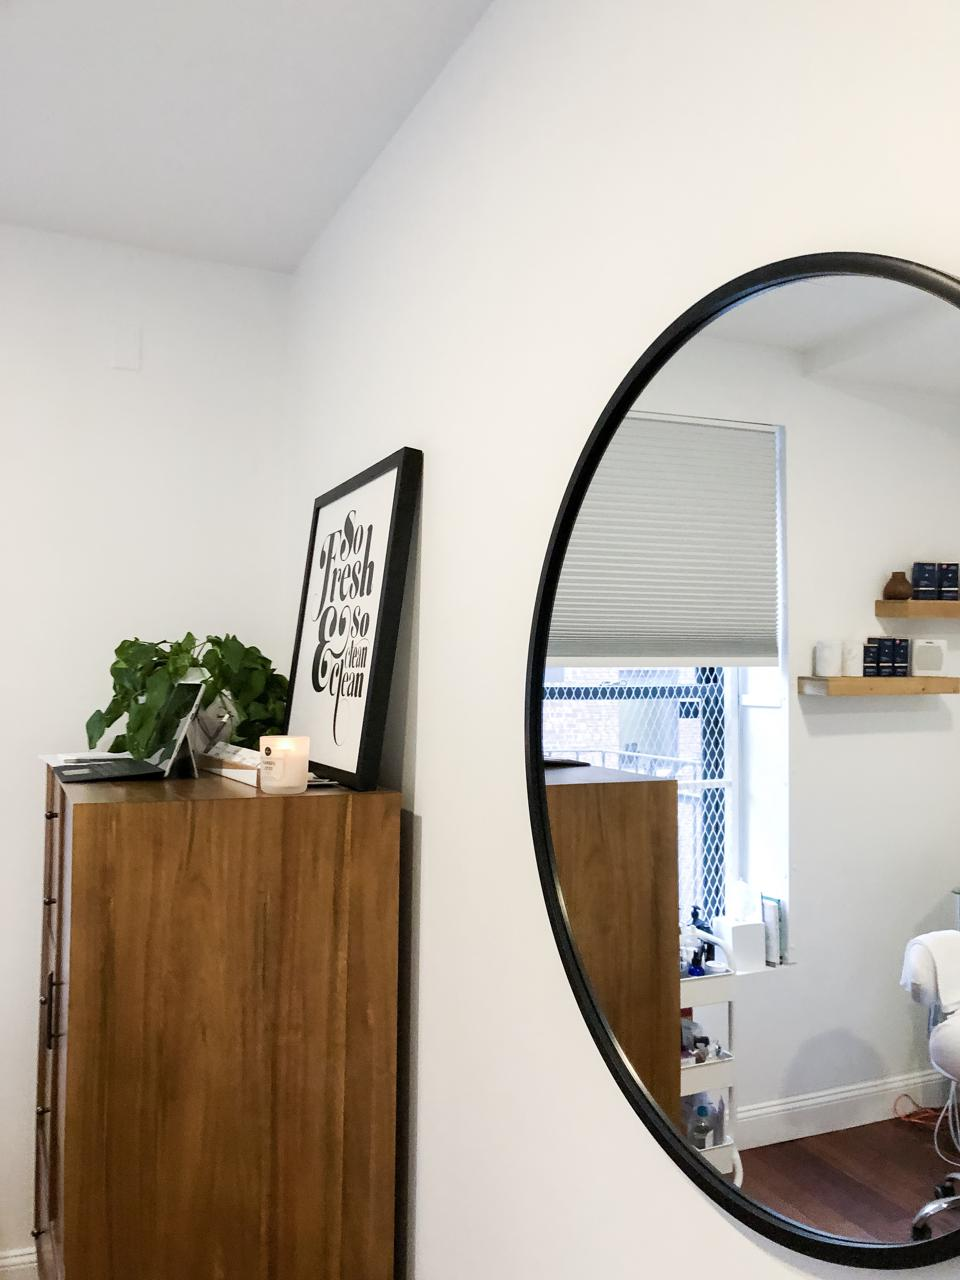 BOSTON, MA - Another view of a treatment room at Vega Vitality